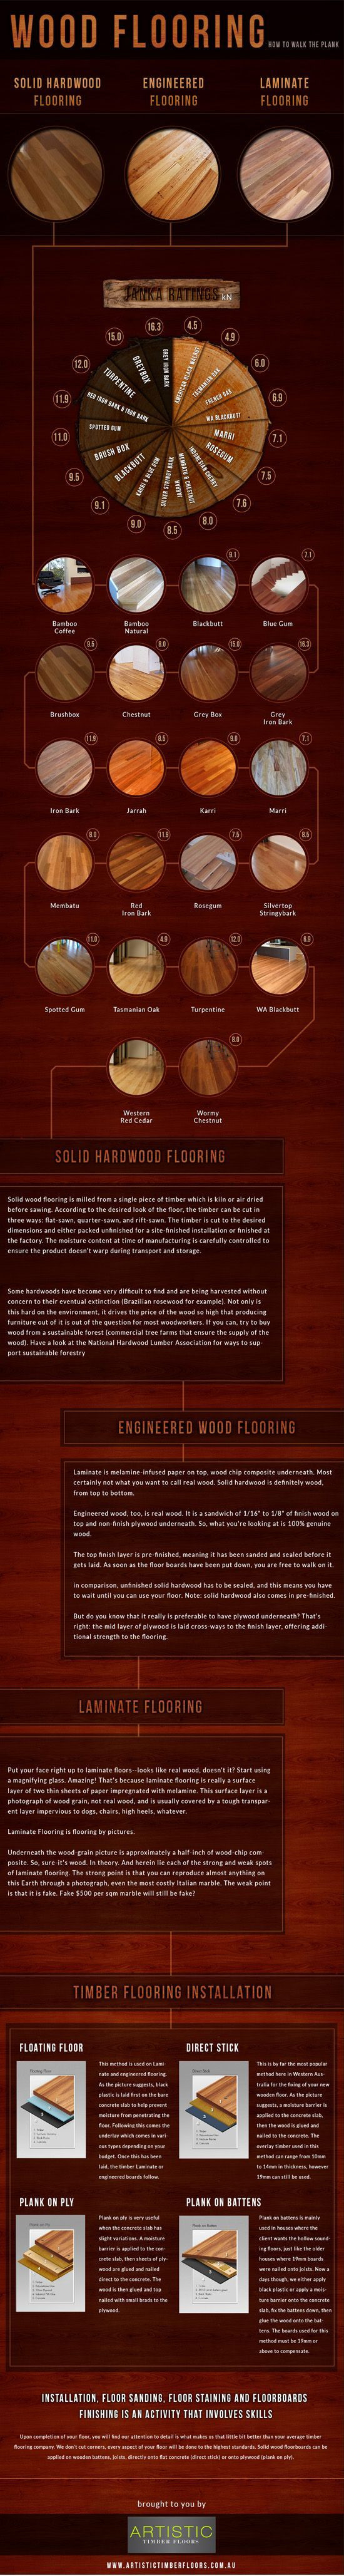 hardwood flooring sacramento of 21 best 07 the floor images on pinterest within find this pin and more on timber flooring perth